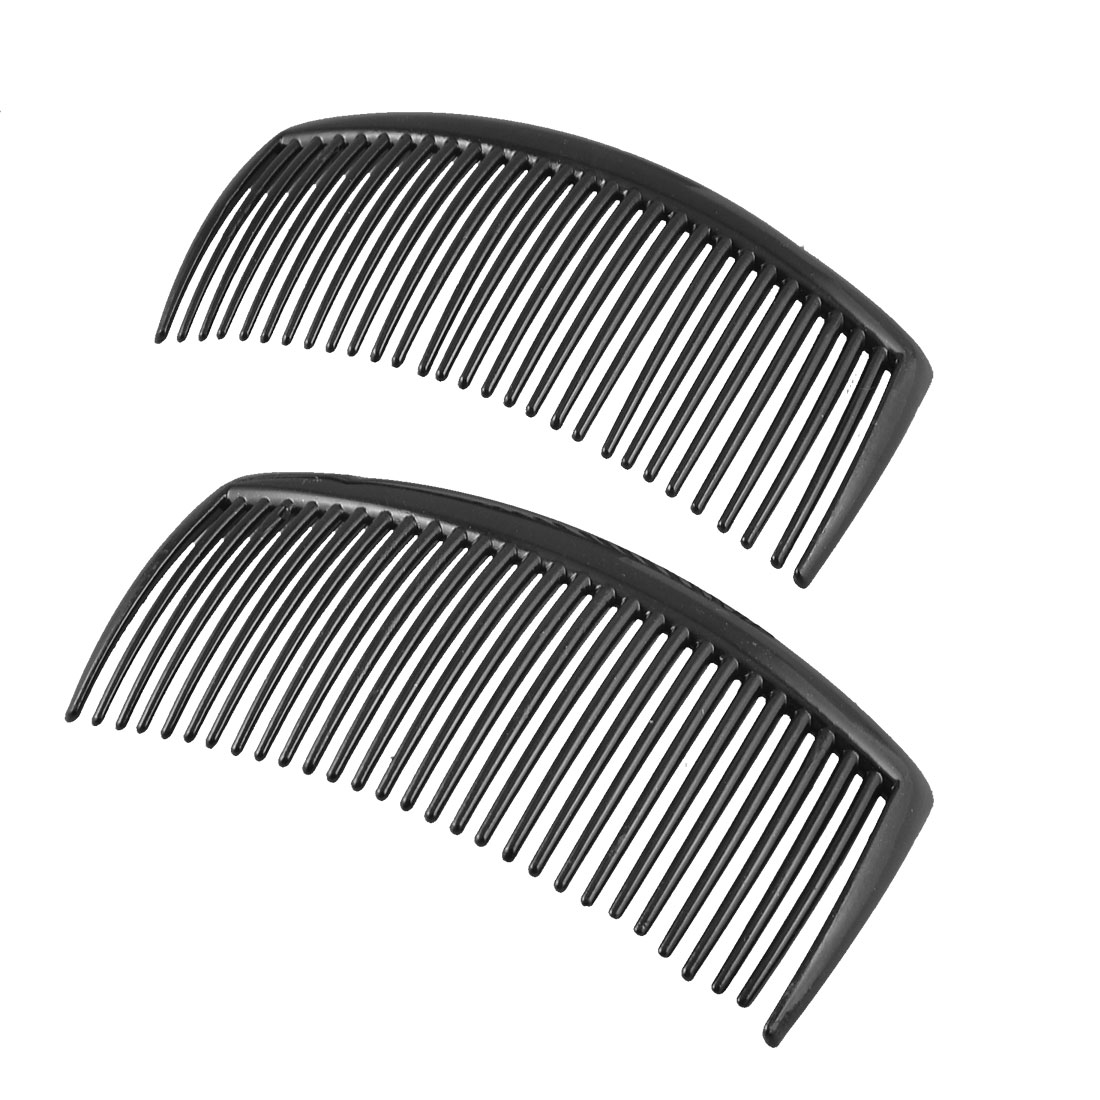 2PCS Black Plastic 29 Teeth Hairstyle Hair Clip Clamp Comb for Ladies